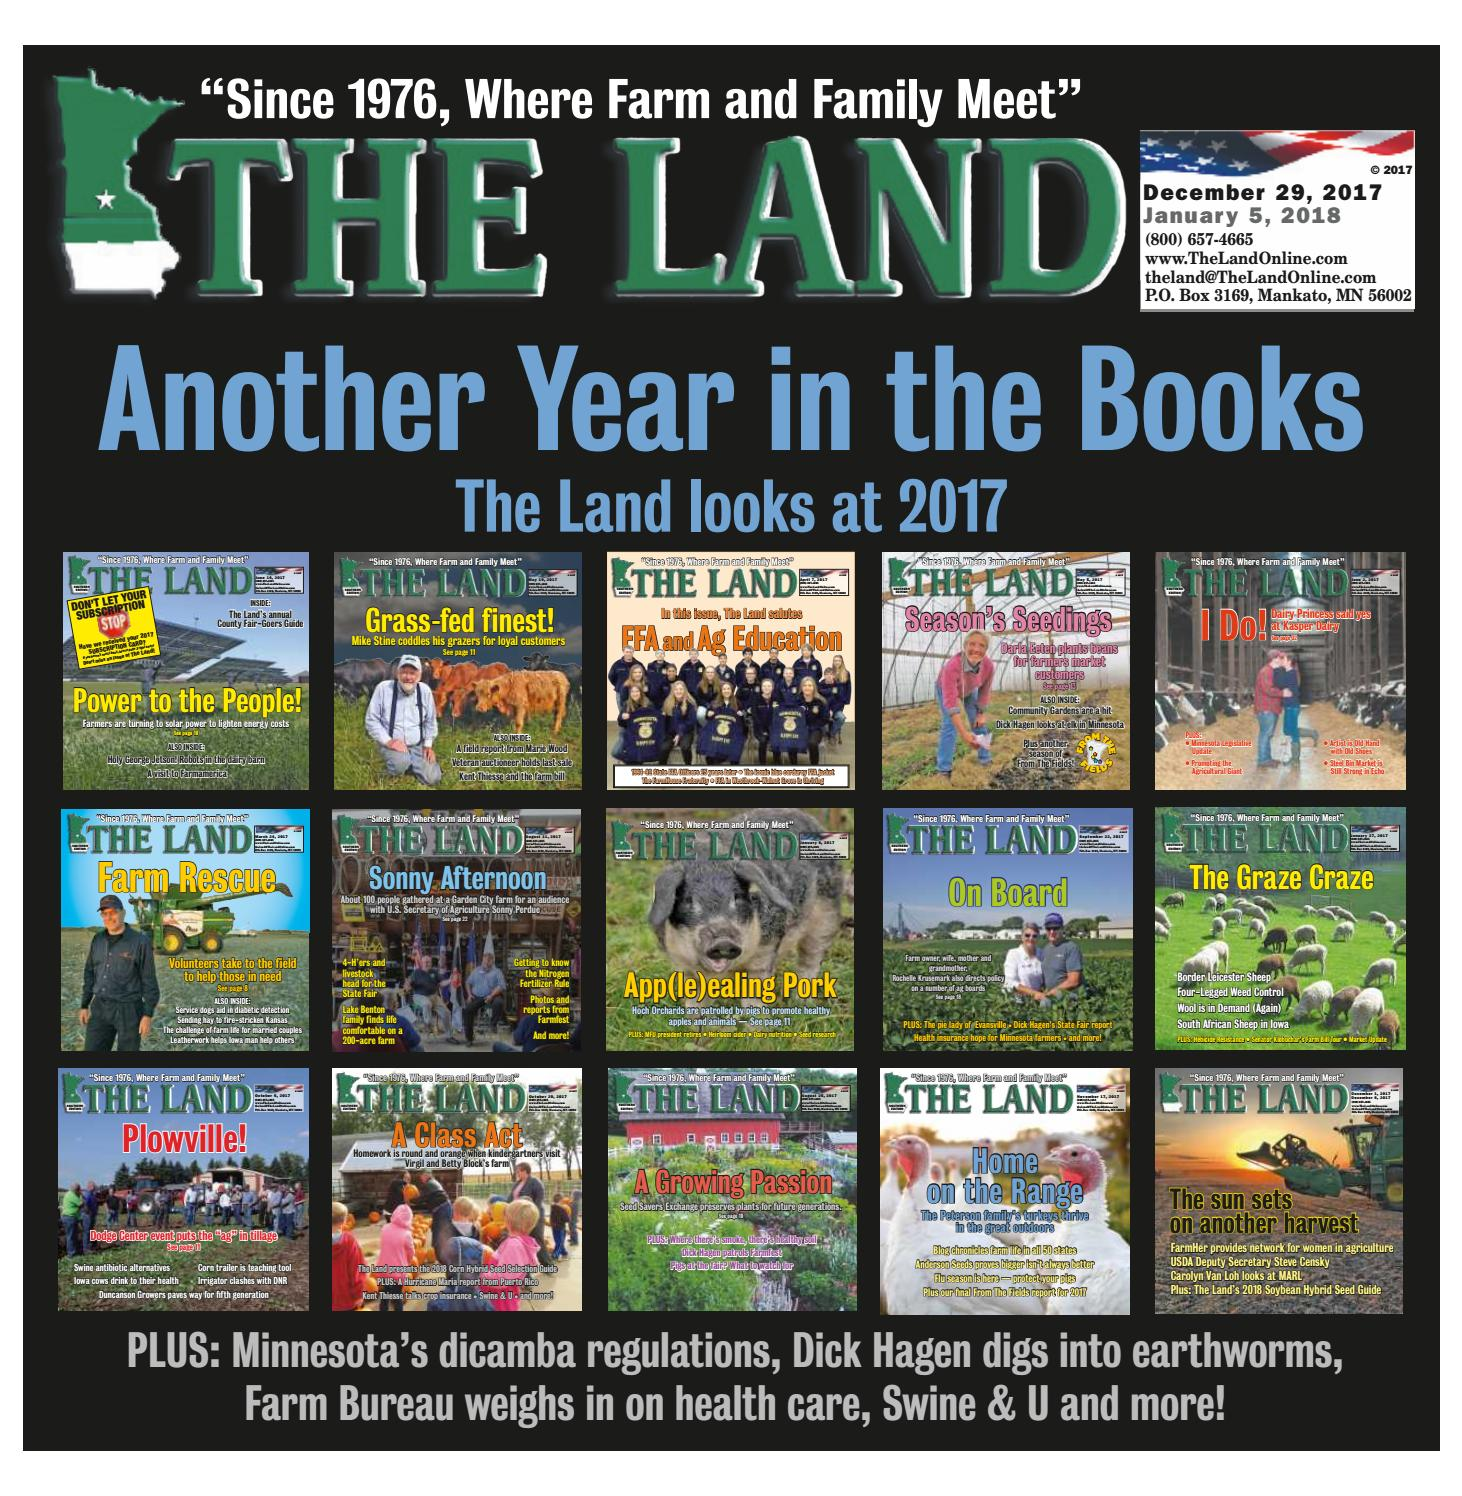 THE LAND December 29 2017 Southern Edition by The Land issuu